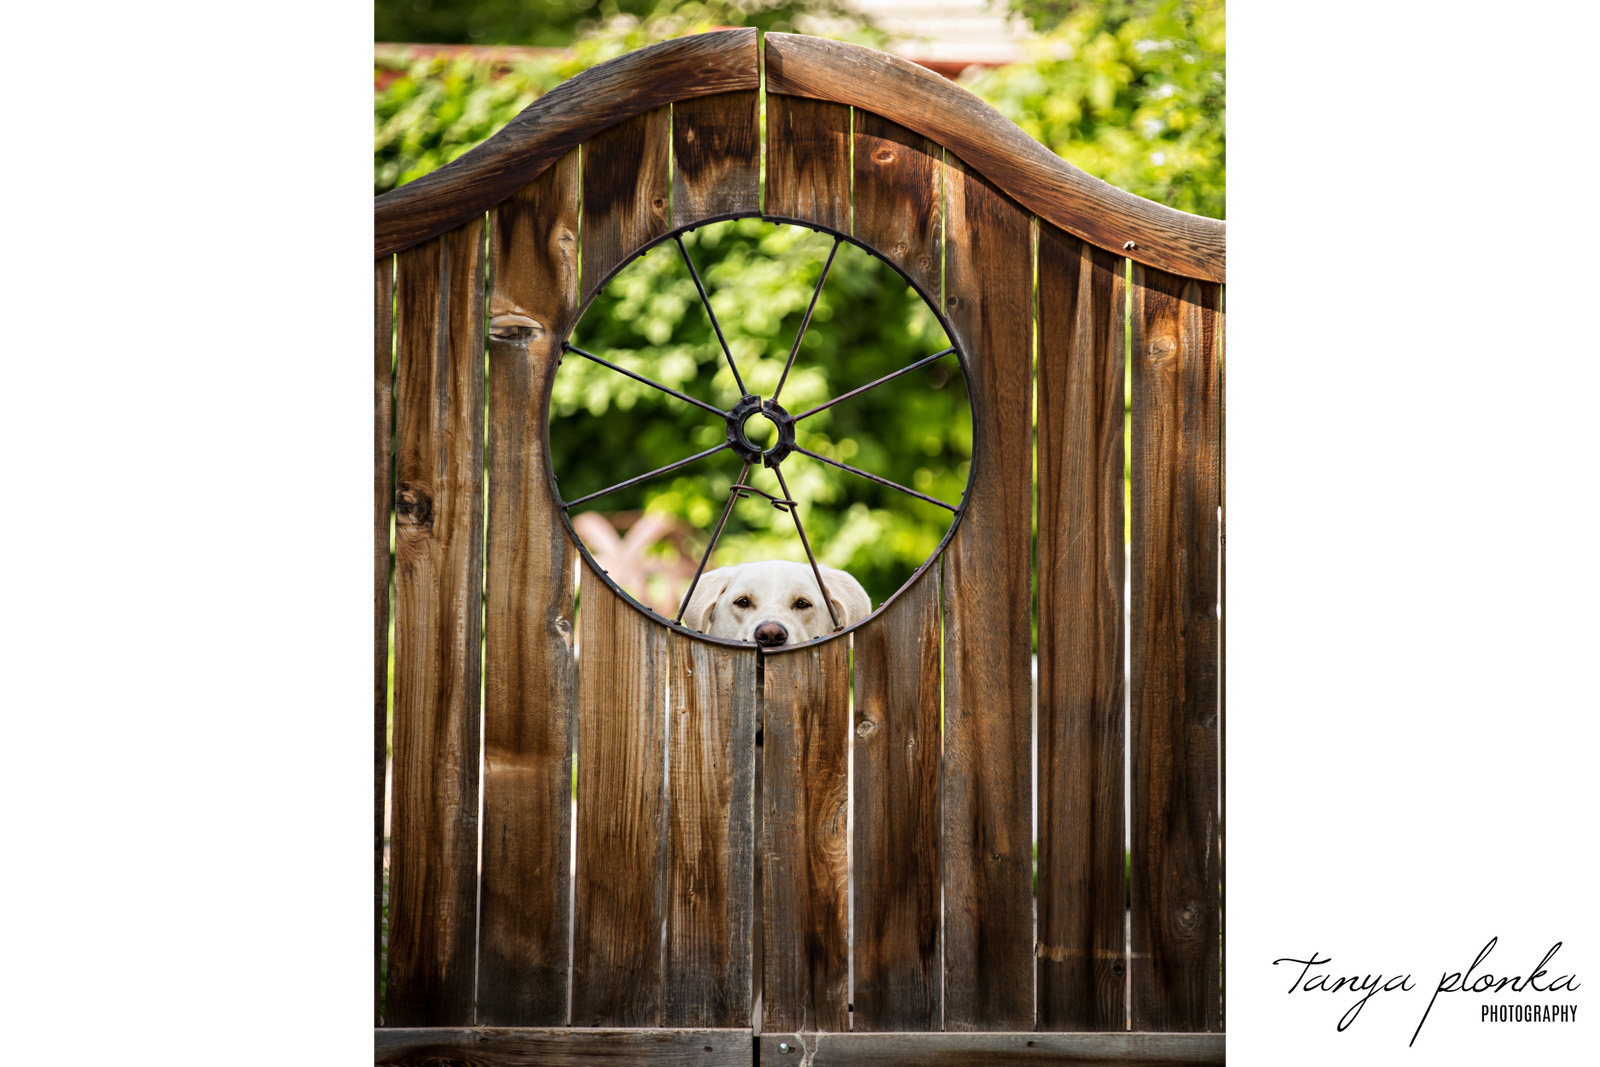 Cute dog looking through circular opening in wooden gate